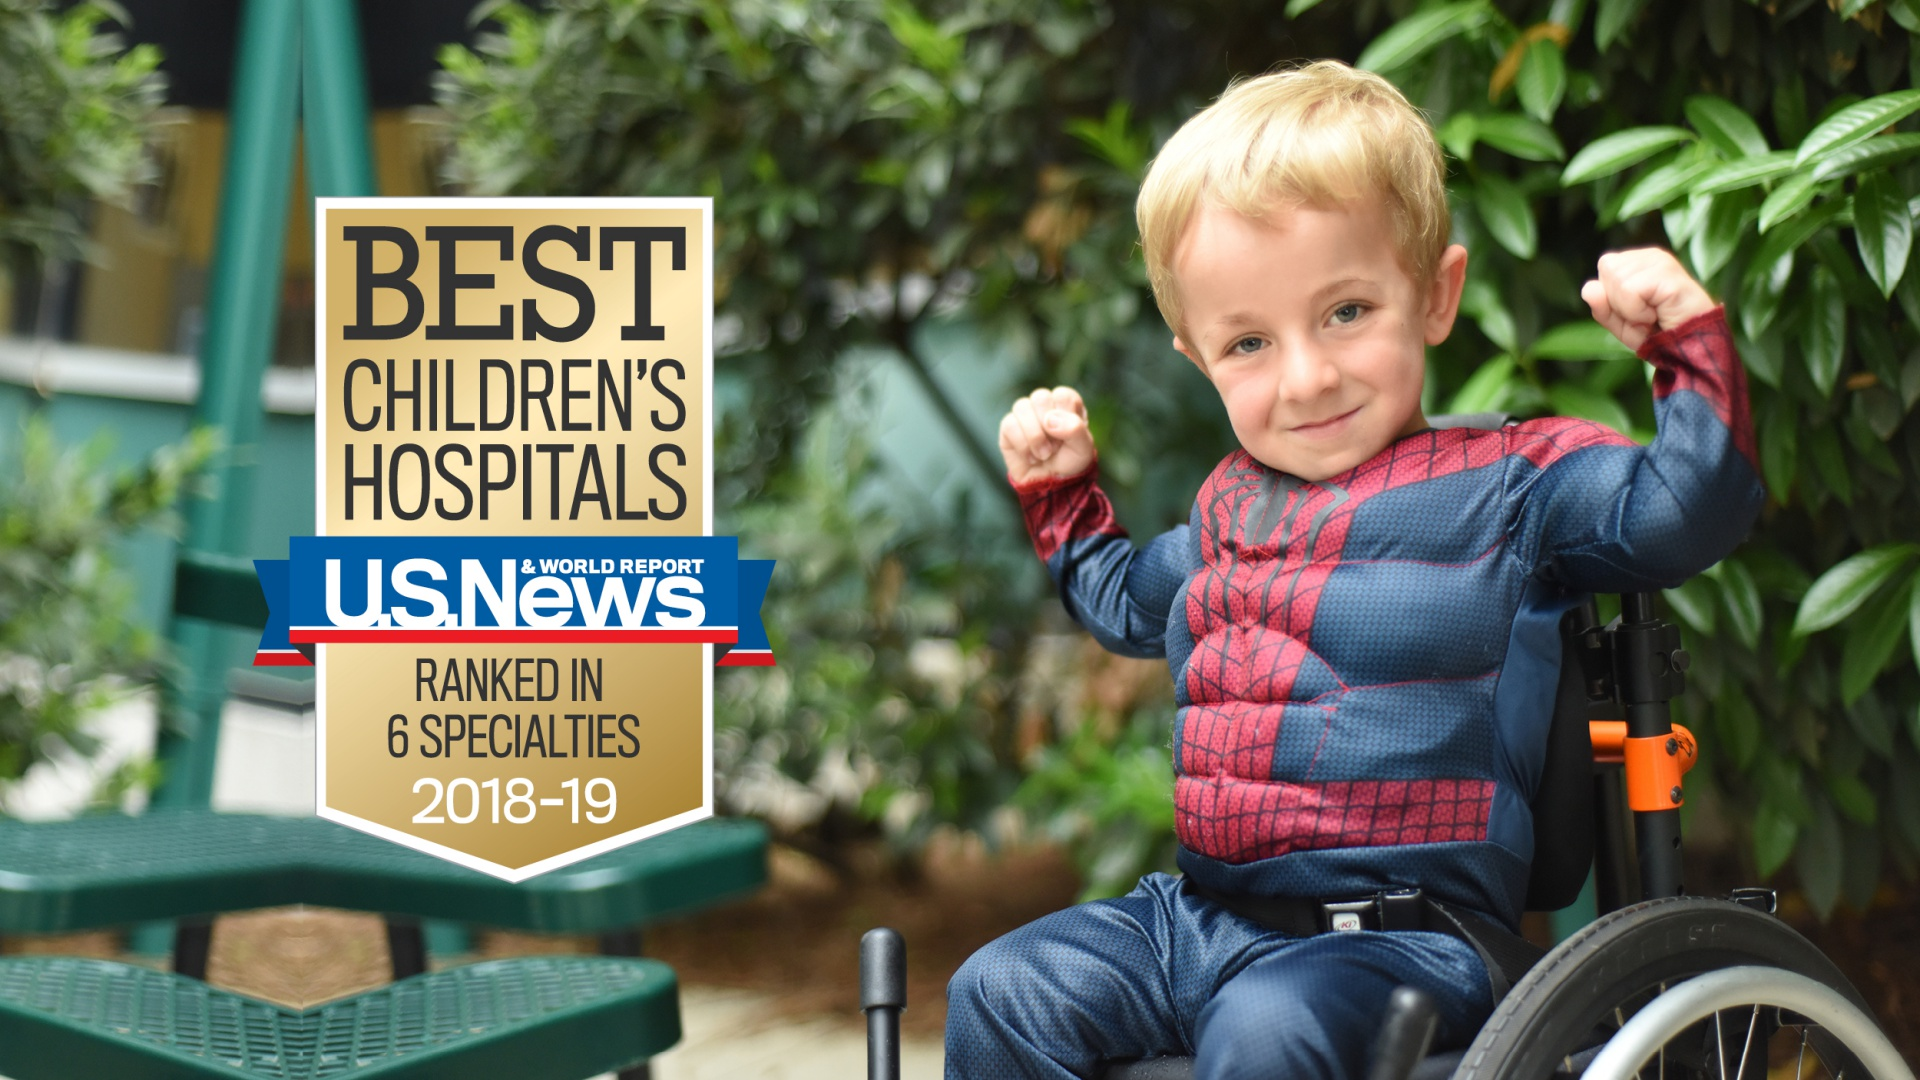 Being one of the nation's top hospitals is a reputation we strive to earn every day, for every child. Once again, Levine Children's Hospital has been named a Best Children's Hospital by U.S. News & World Report in six specialties. Learn how we give our best for your child.